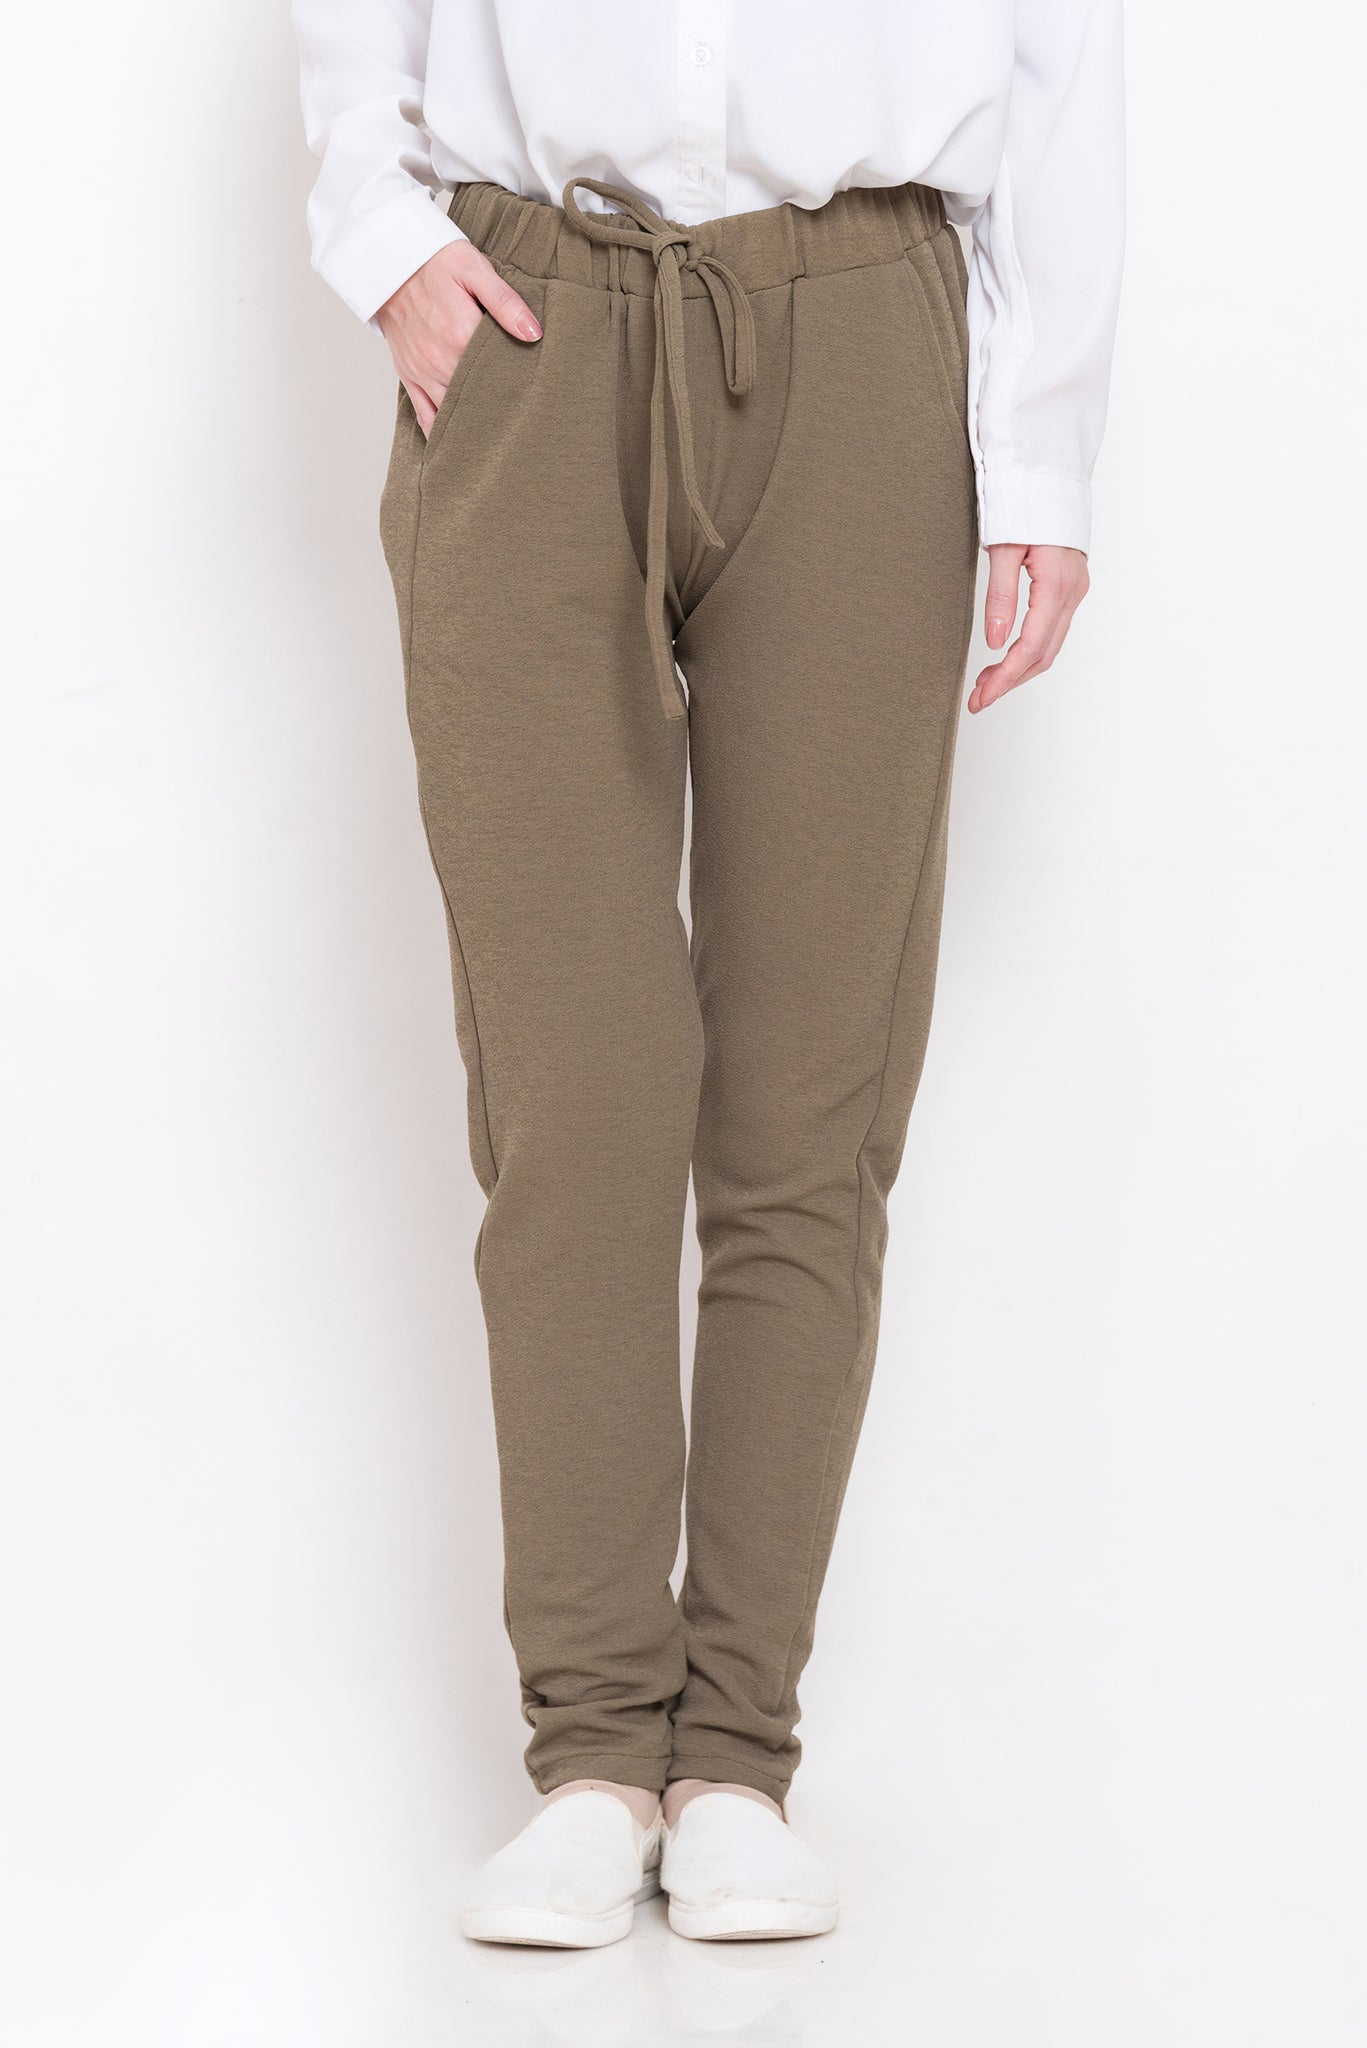 ZM - Neo Army Pants